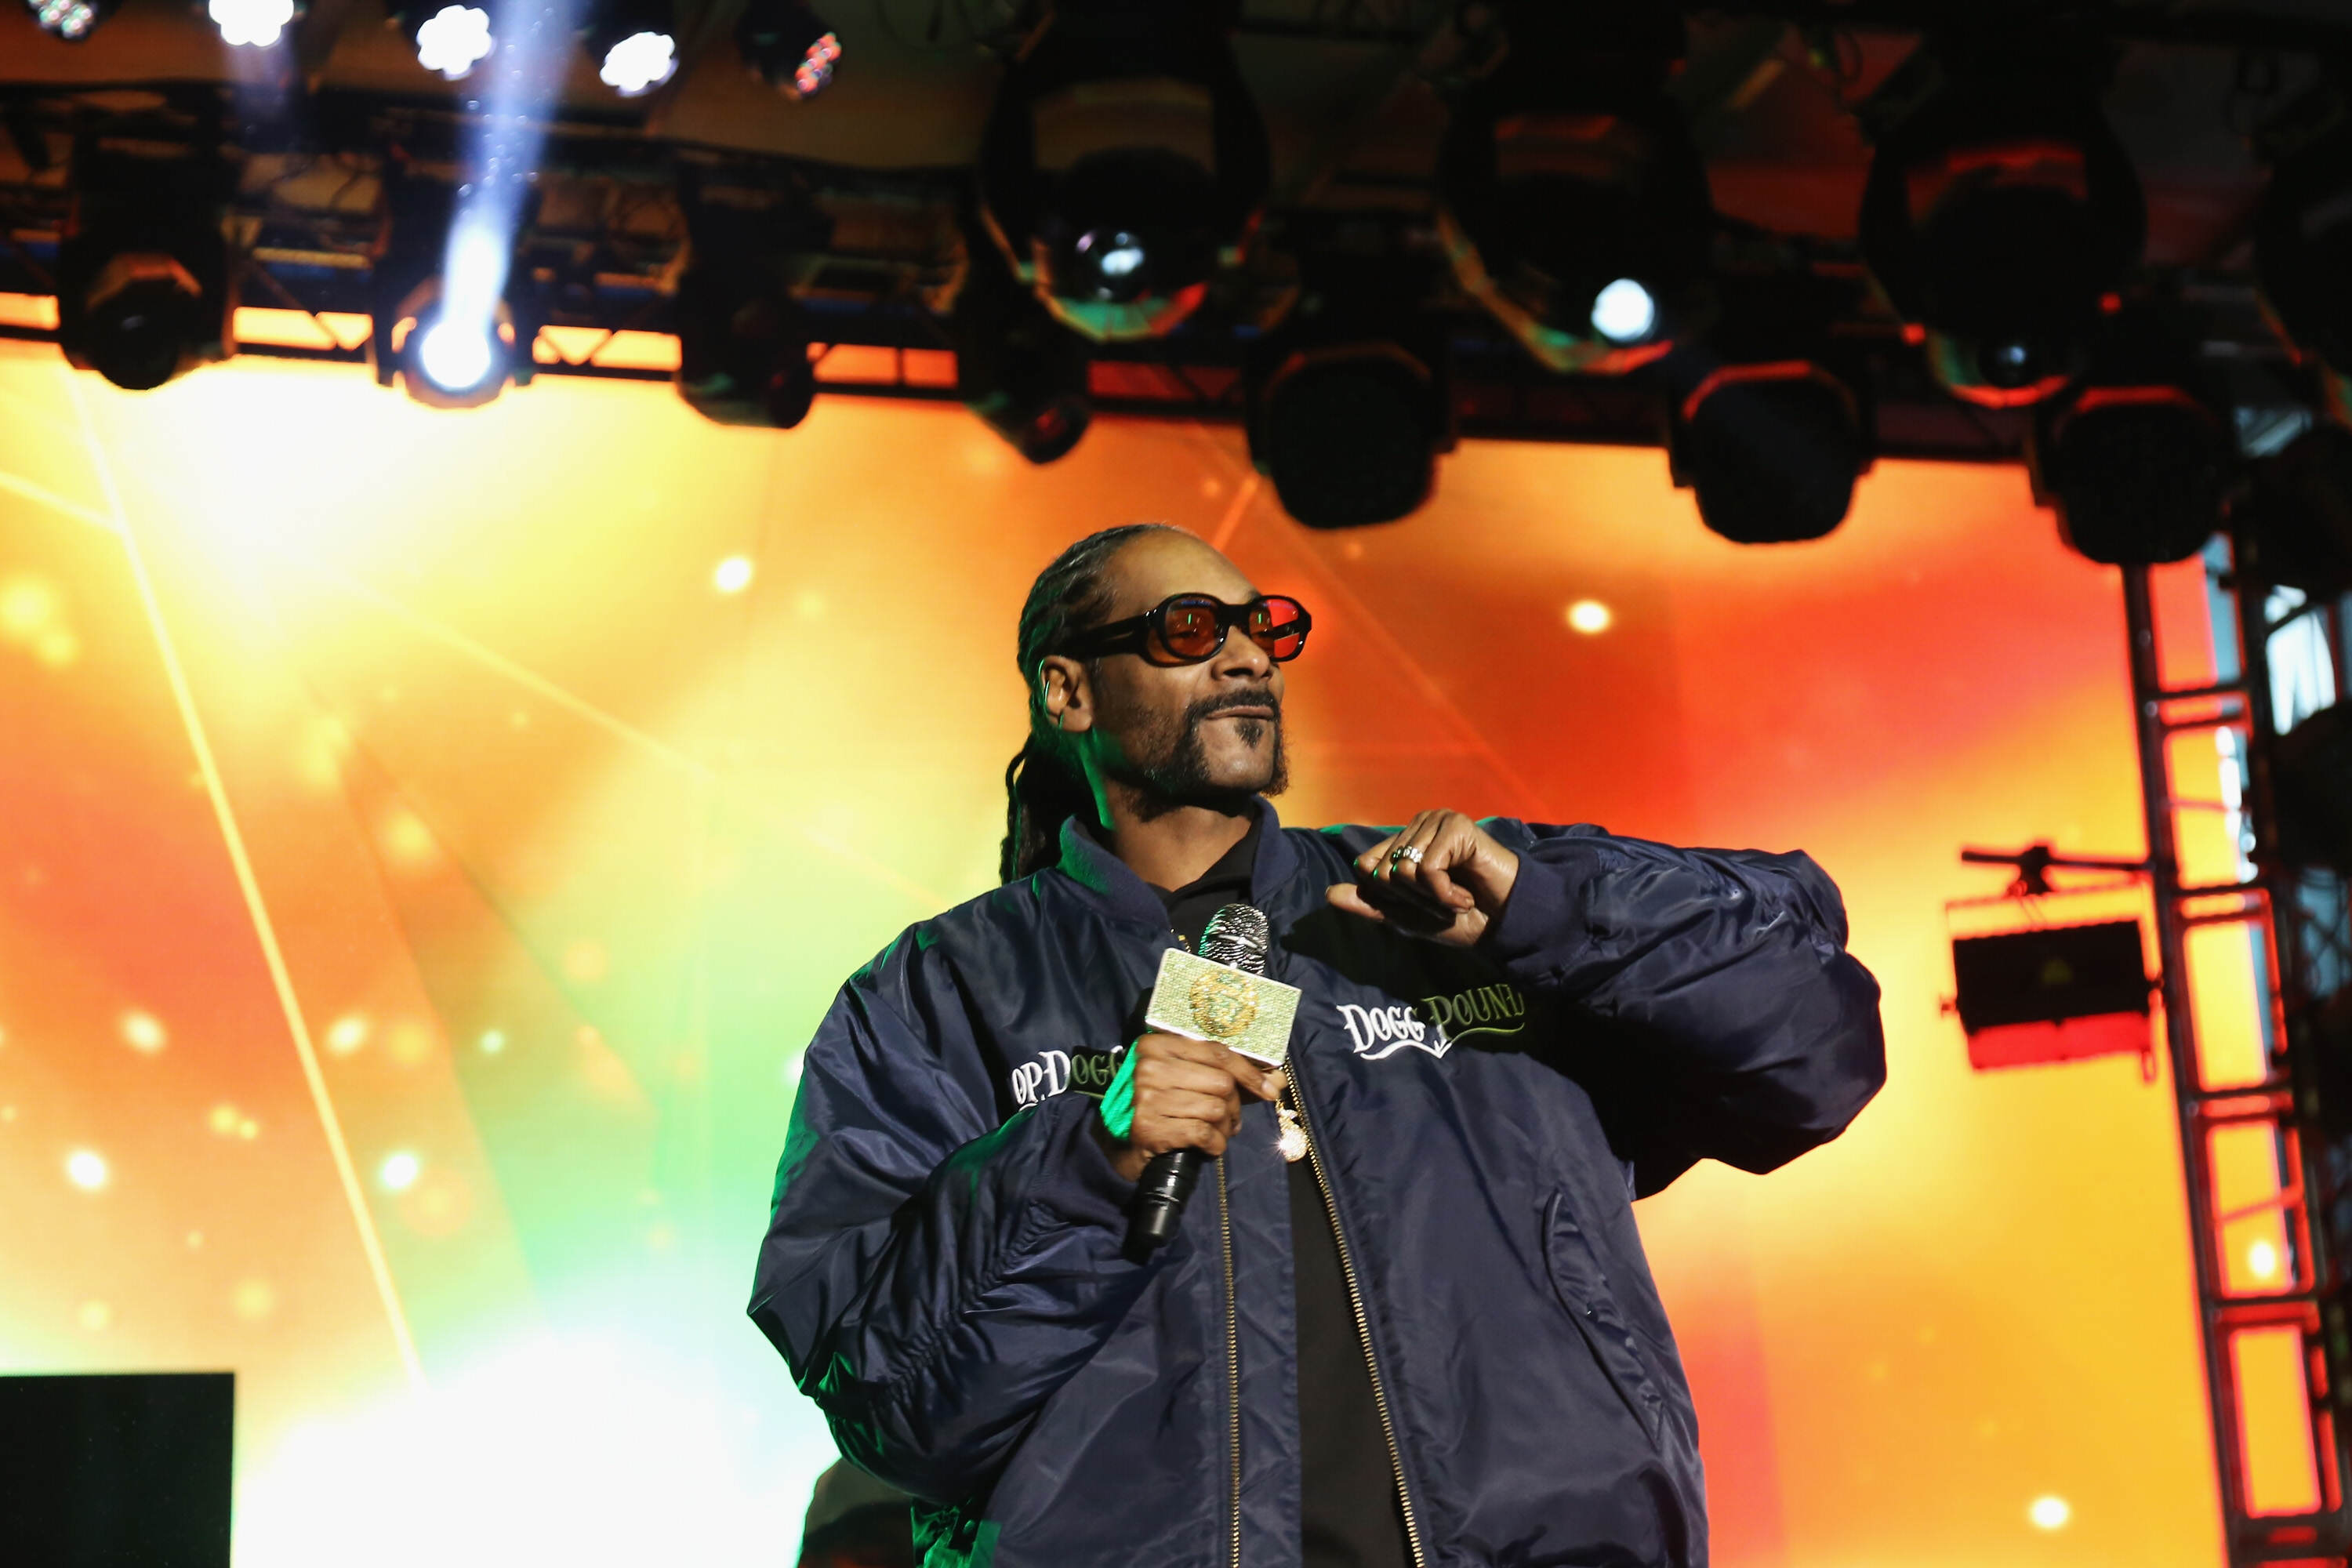 Snoop Dogg Has Some Interesting Thoughts On Death And The Afterlife GettyImages 527861276